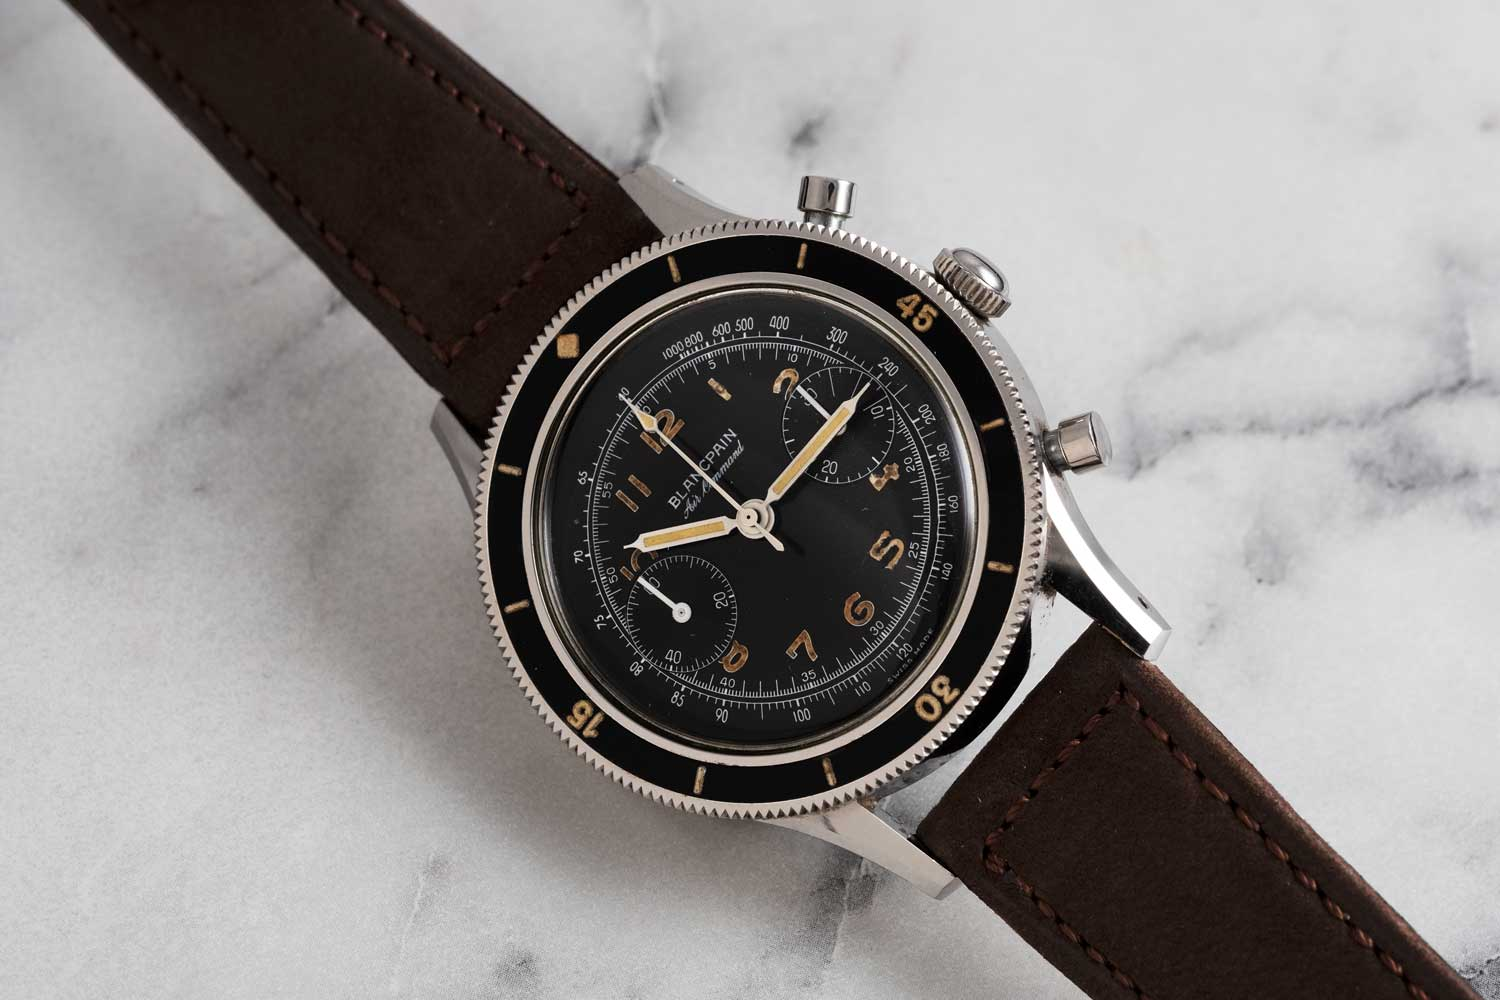 Lot 814: Blancpain Air Command (Image © Revolution)